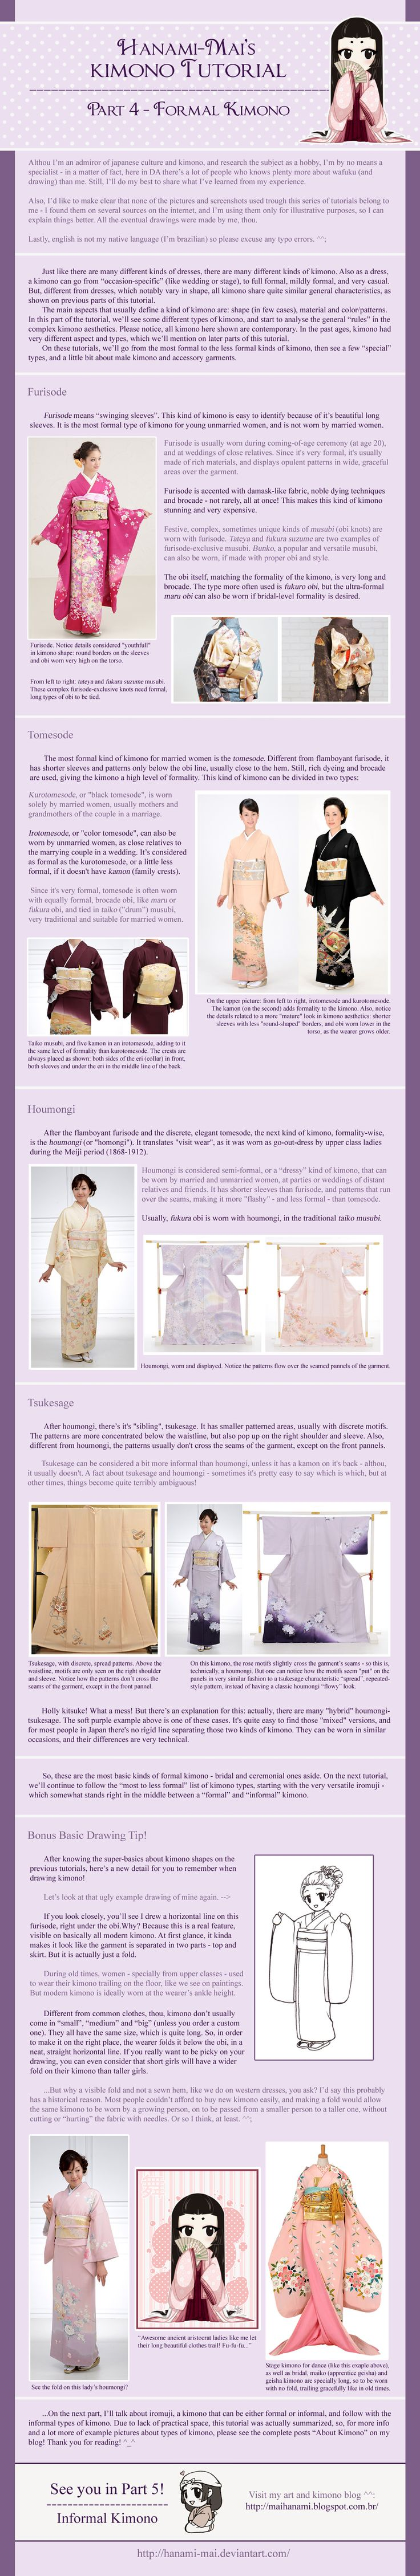 Kimono Tutorial - Part 04 by Hanami-Mai.deviantart.com on @DeviantArt